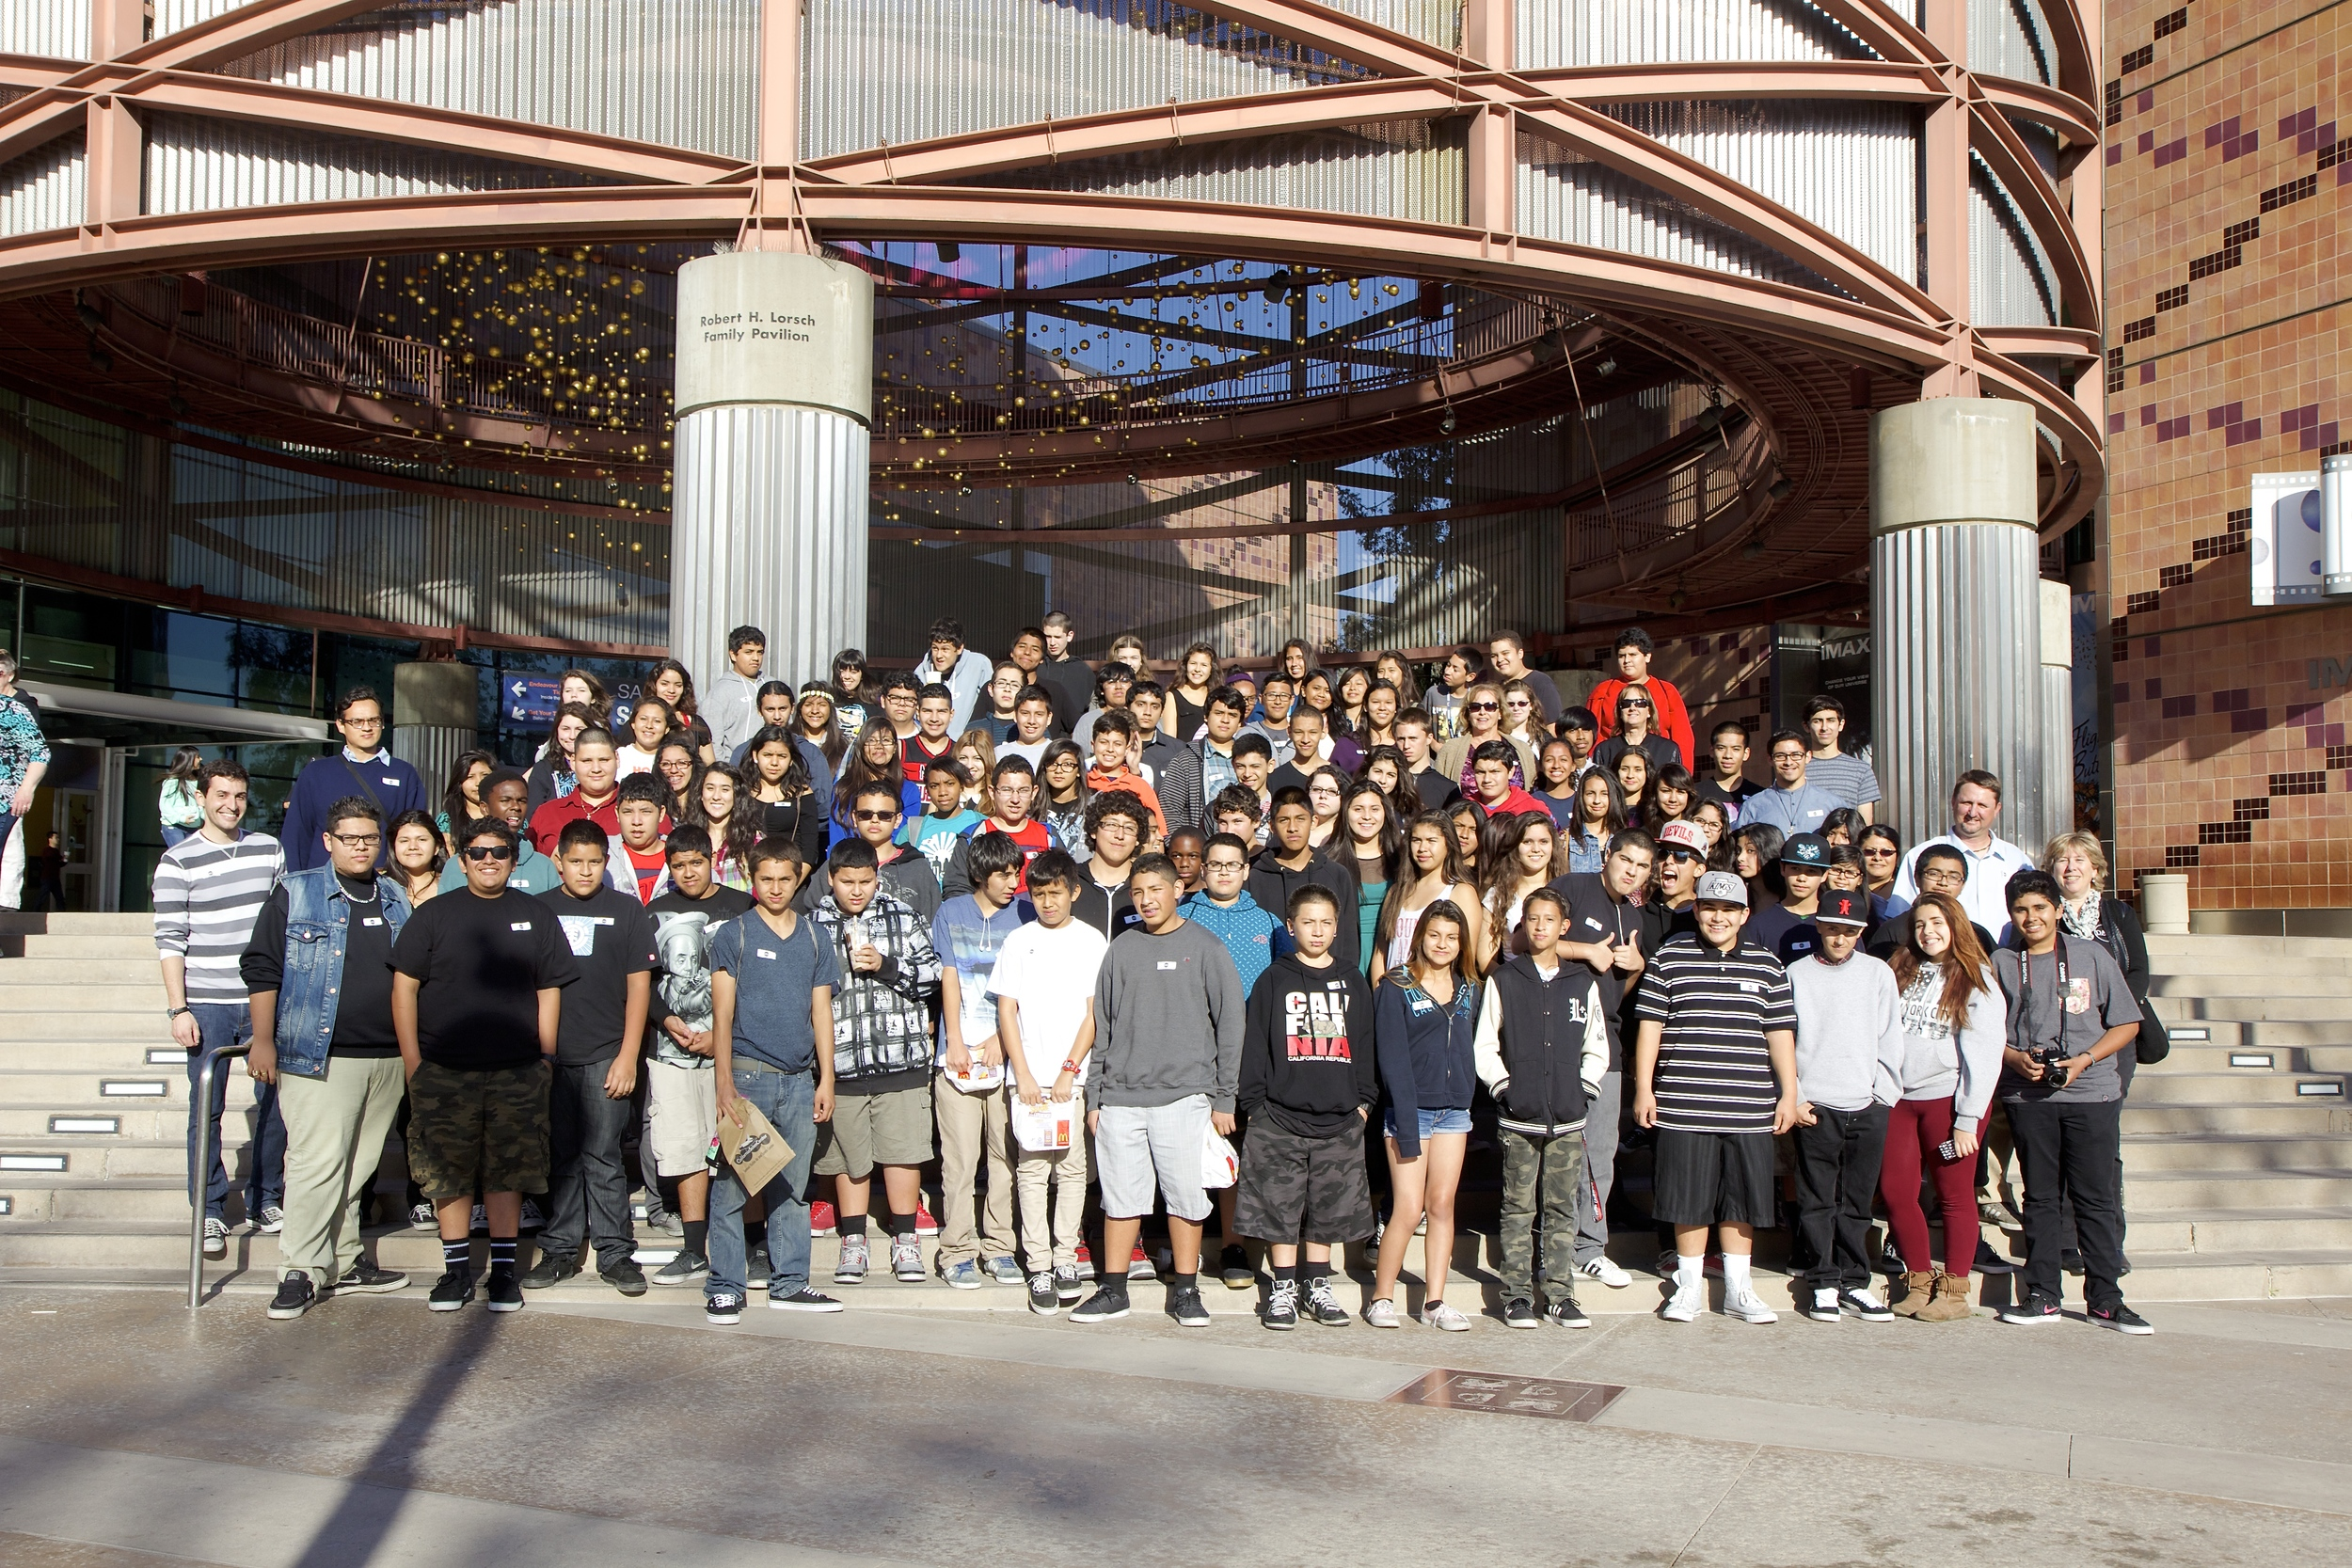 Students pose for a group photo in front of the Science Center before heading home